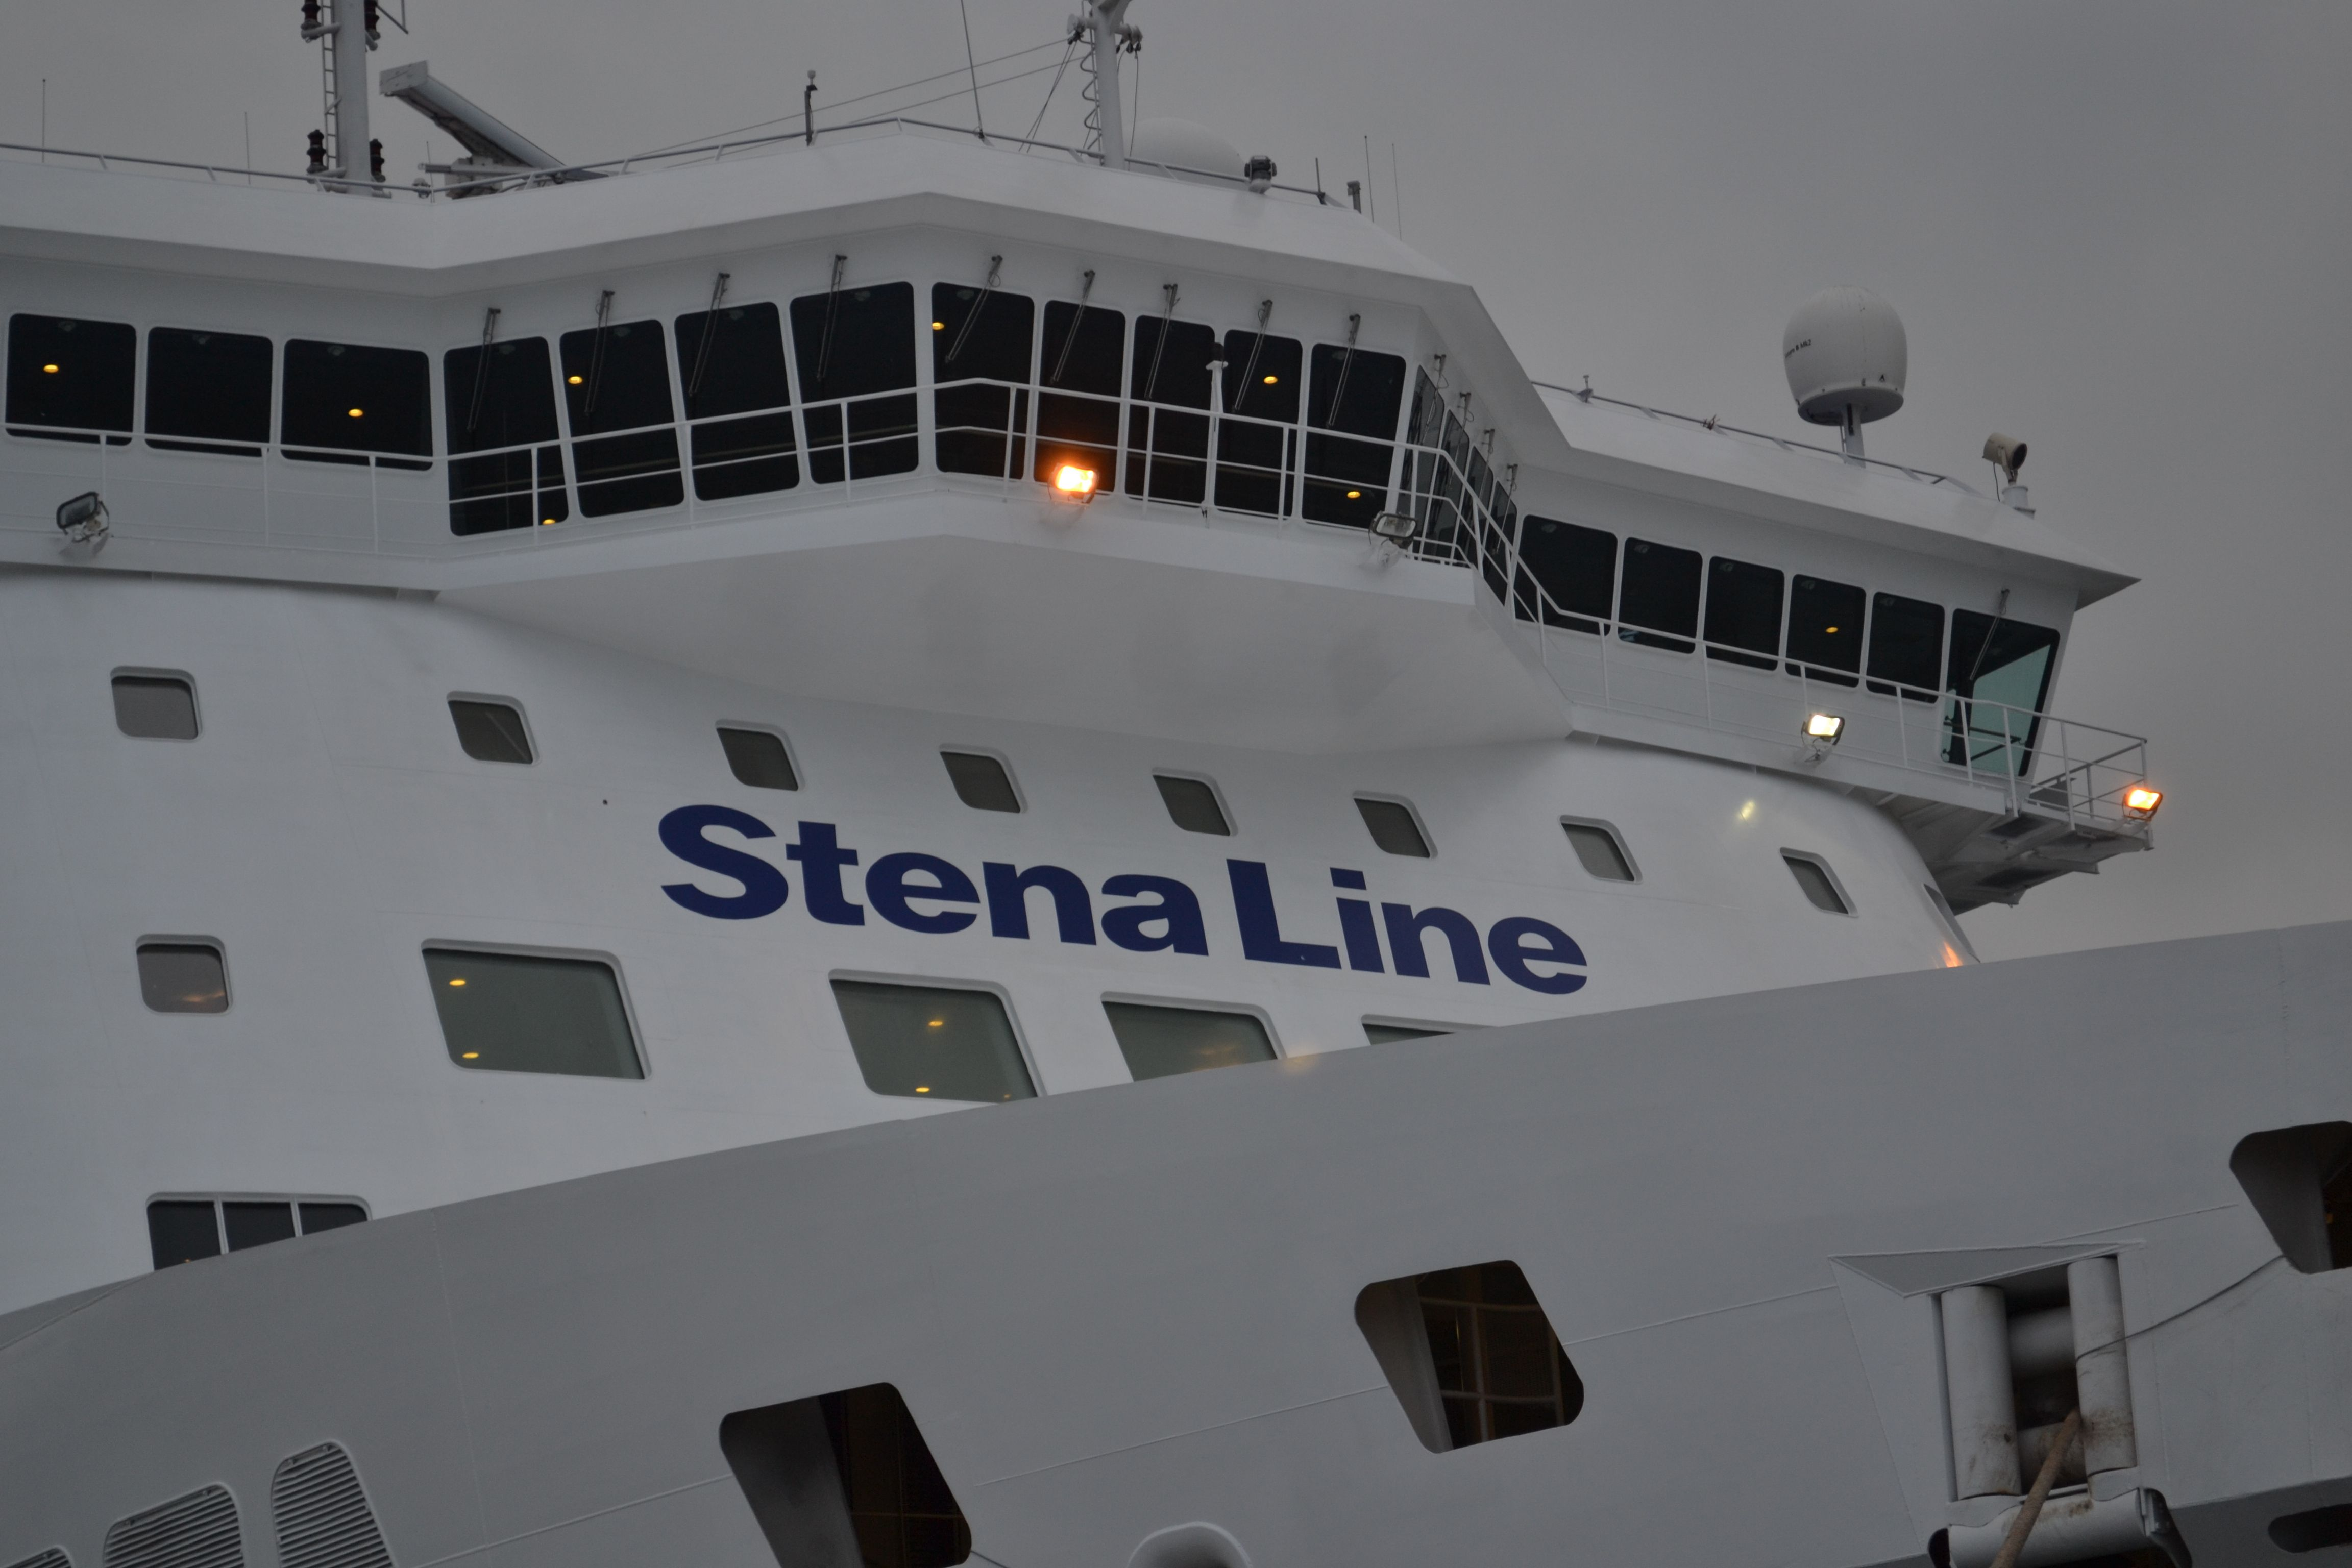 Book color line ferry - Stena Line The Captain S View From A Freight Ferry Https Www